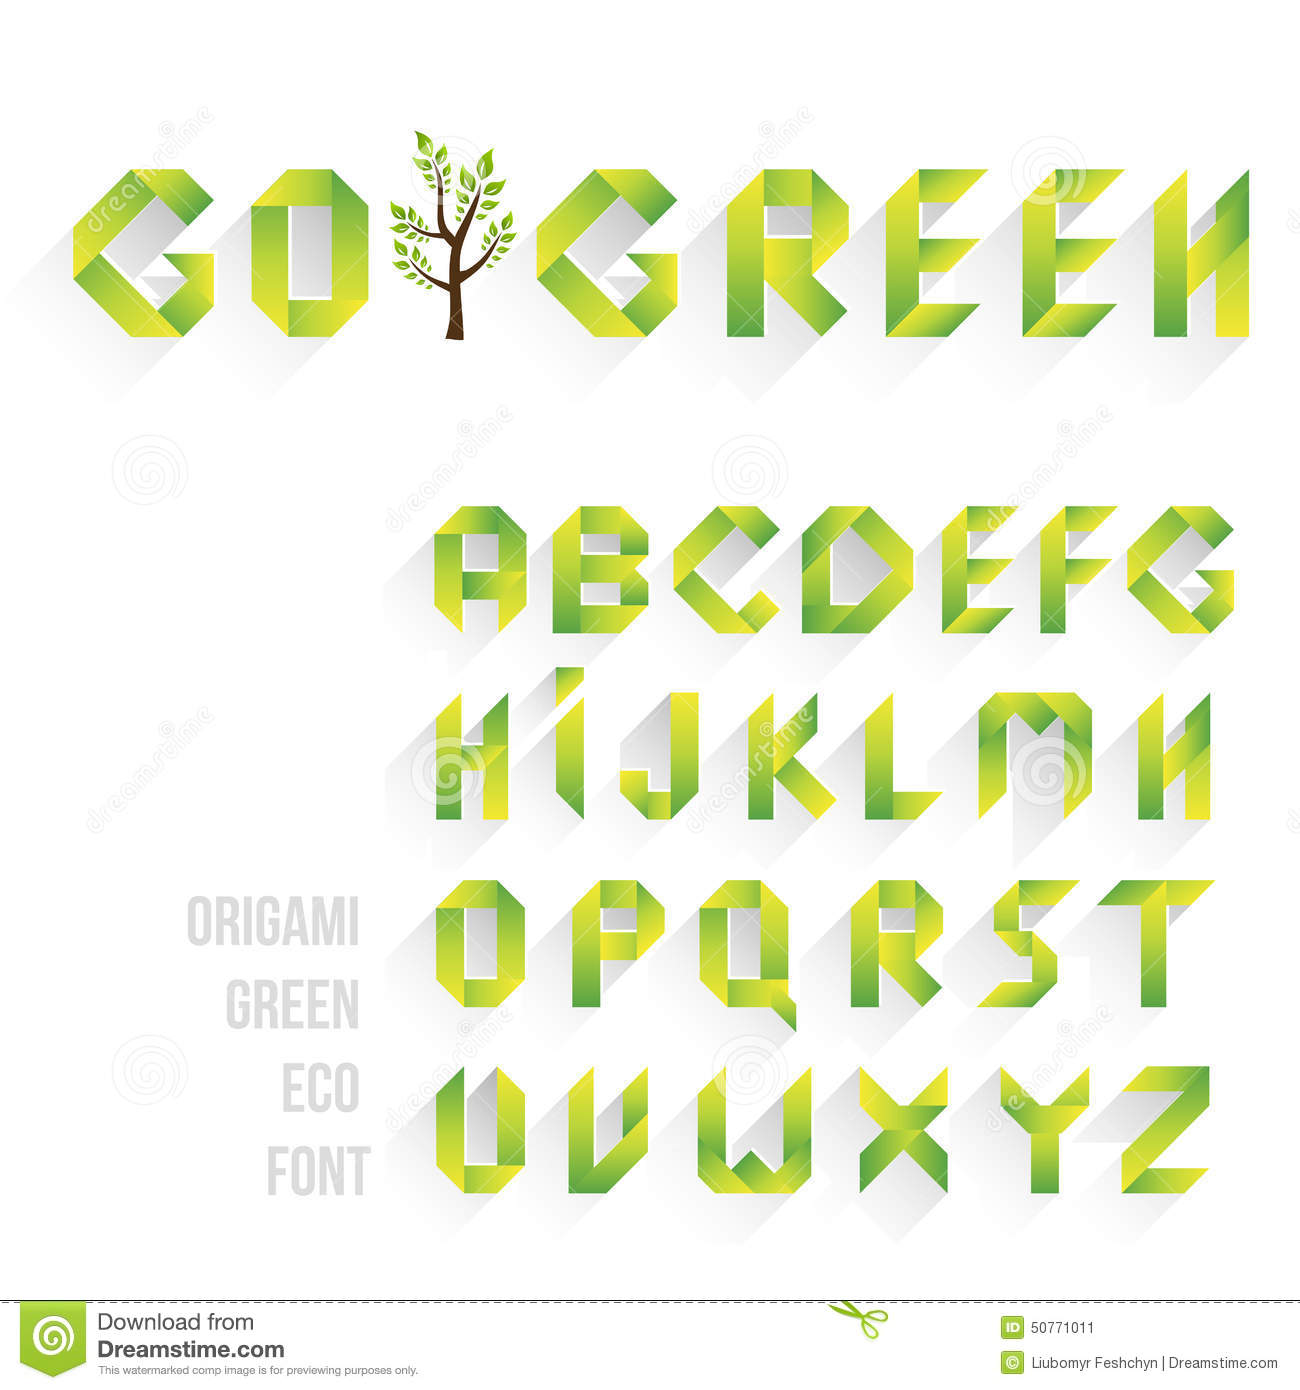 Origami Green Eco Font Alphabet Letters Stock Vector  Illustration